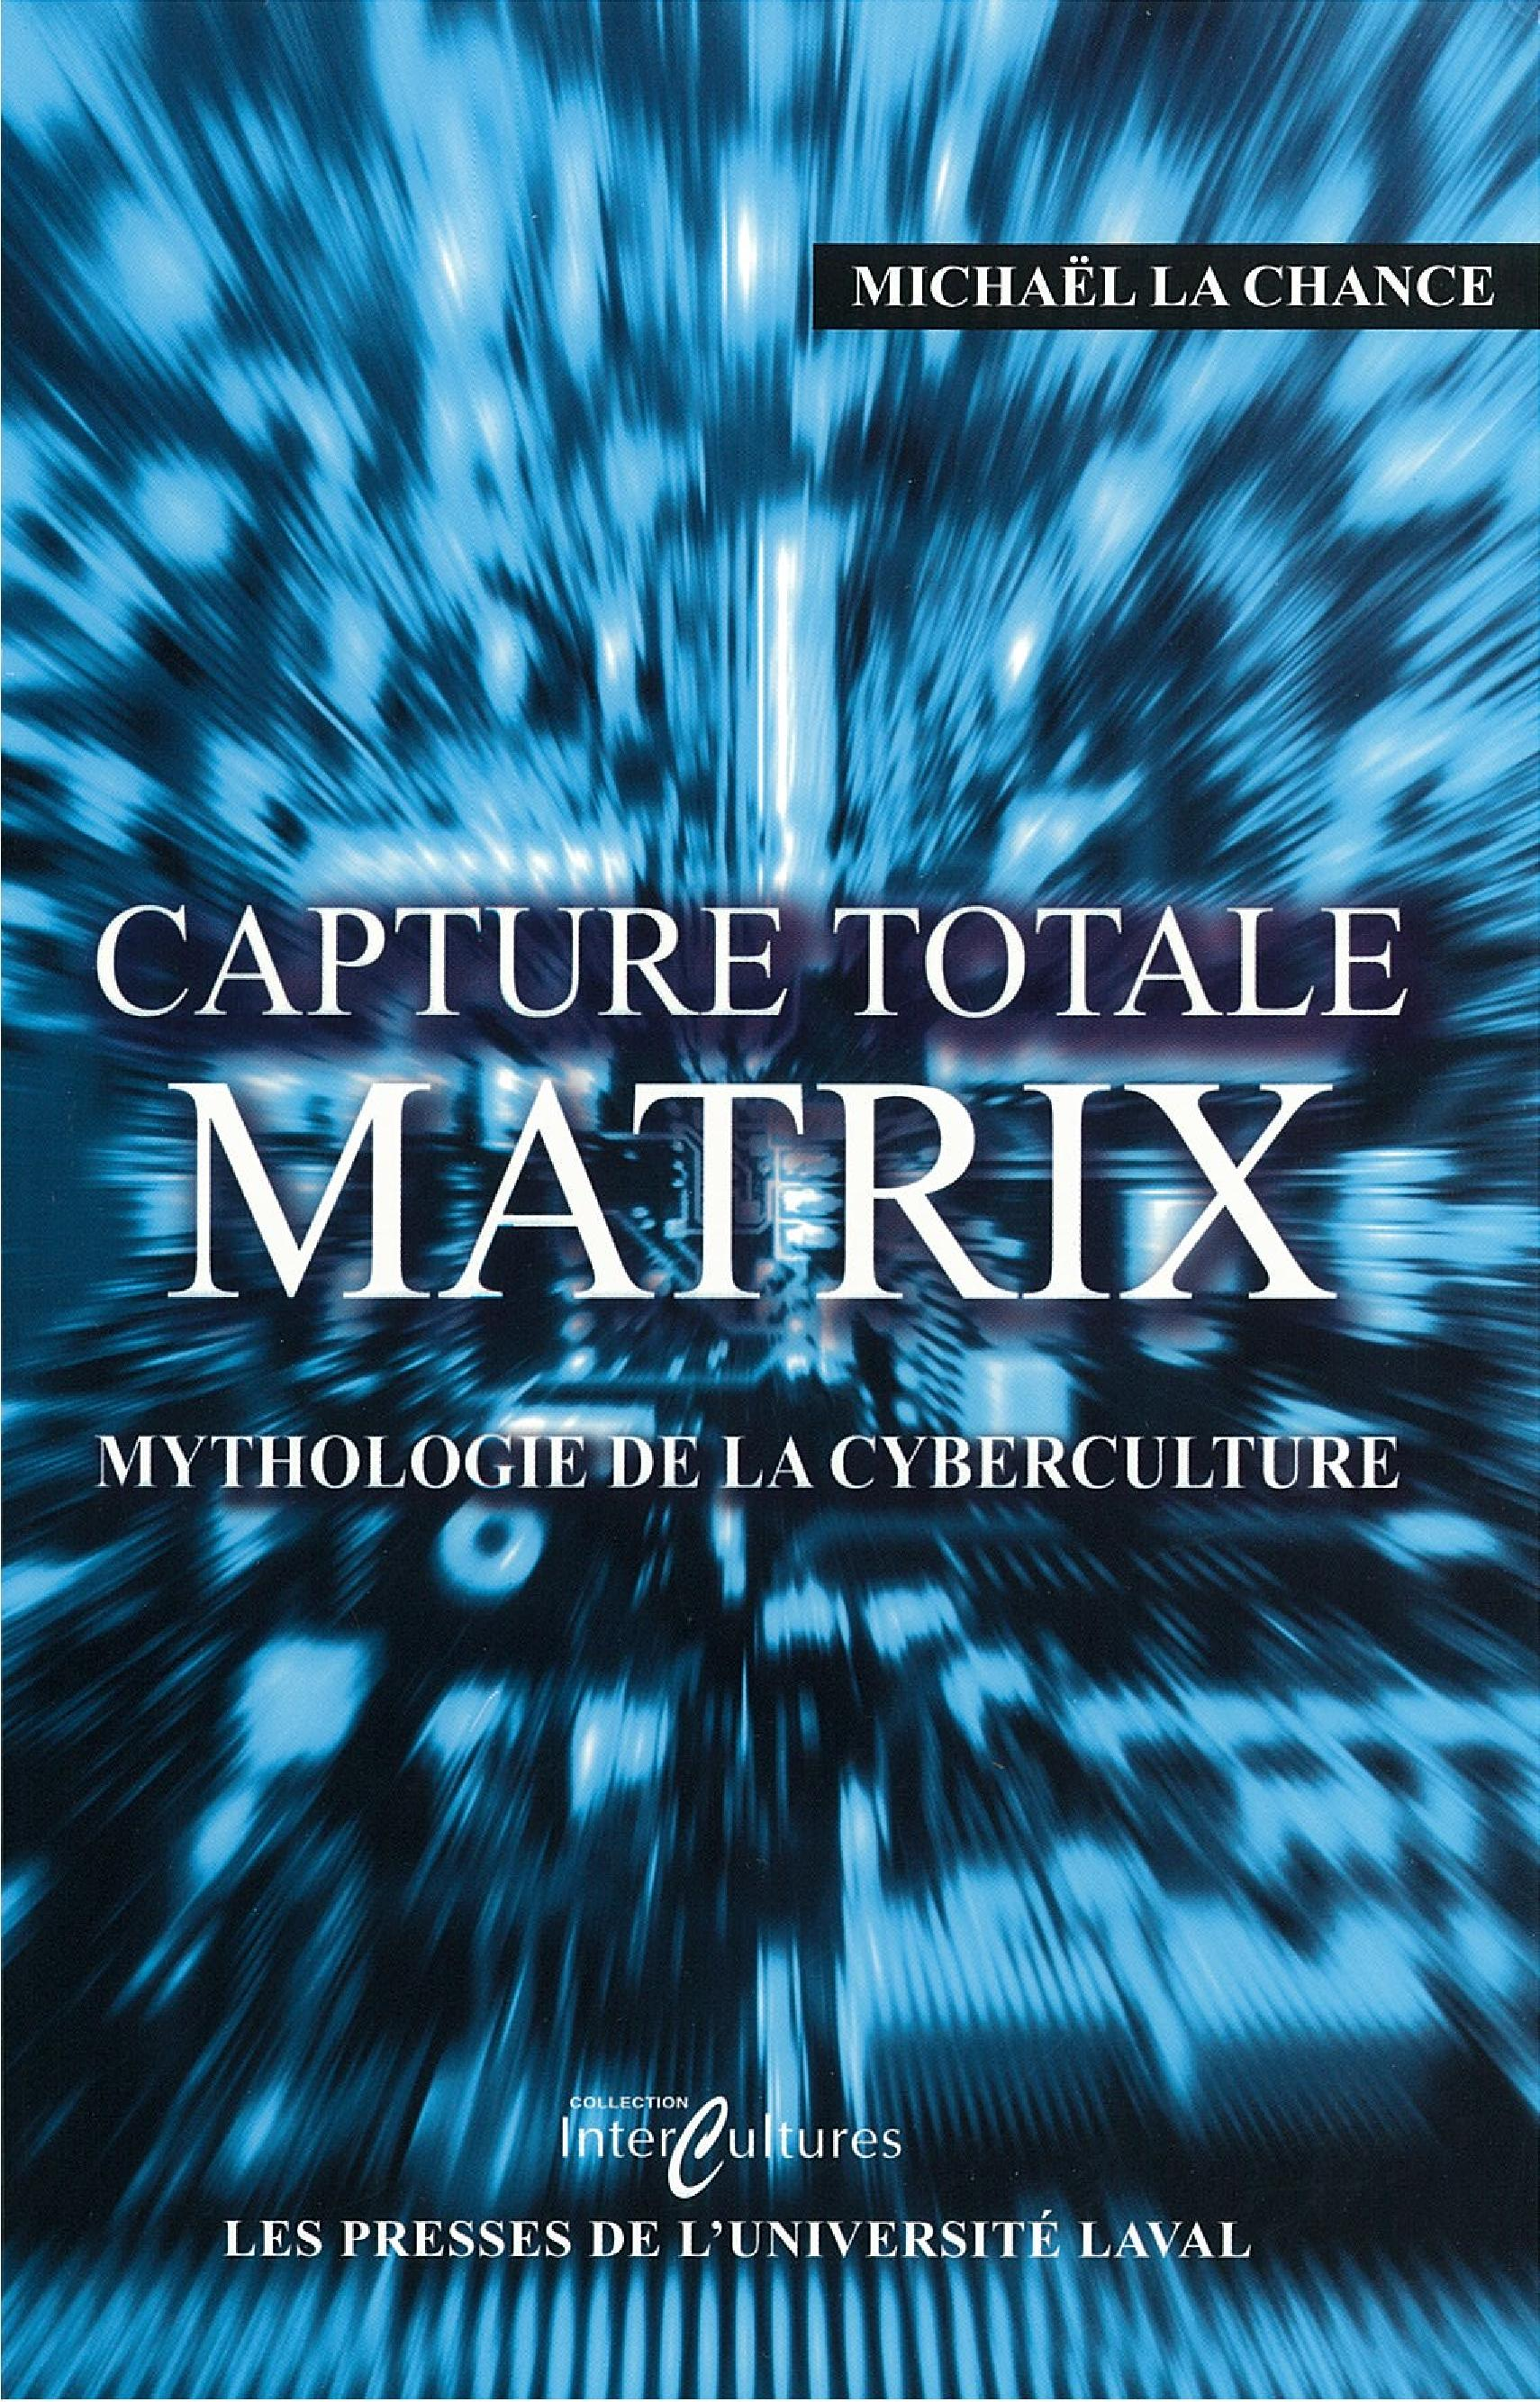 Vignette du livre Capture totale: Matrix, mythologie de la cyberculture